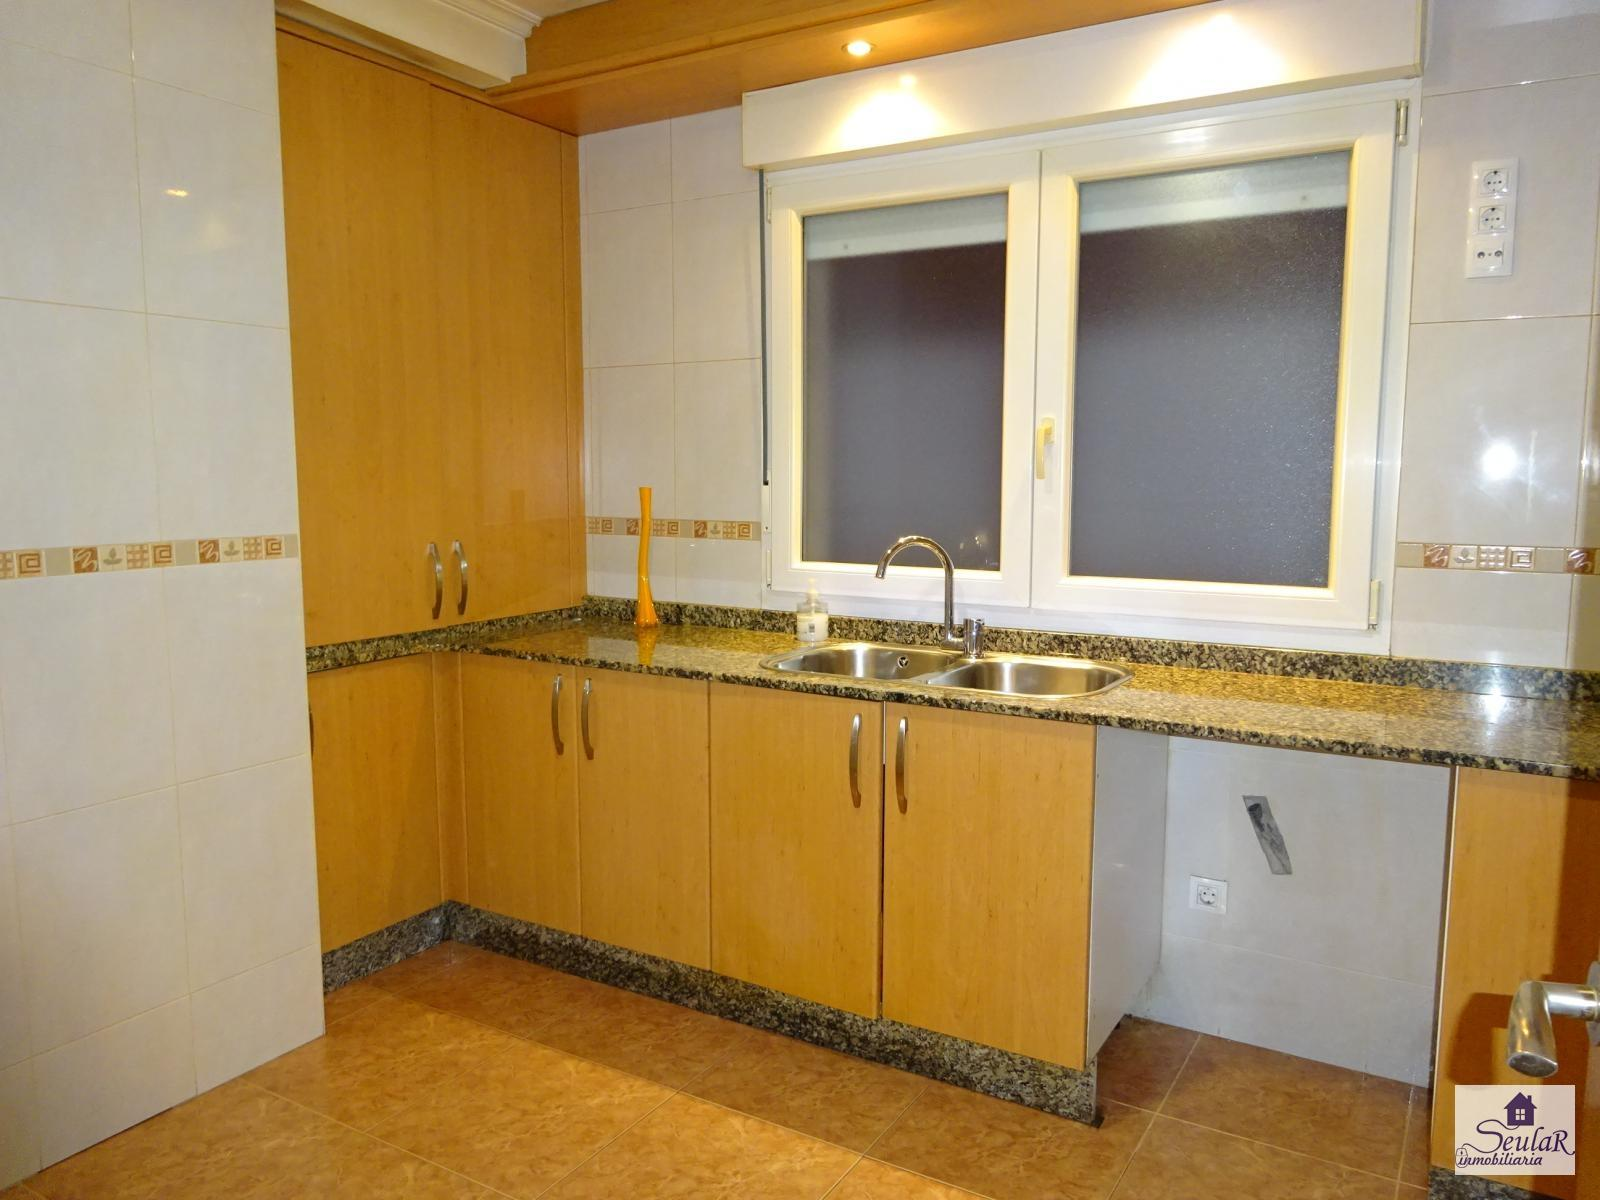 Flat for sale in Rois, 79.500 €